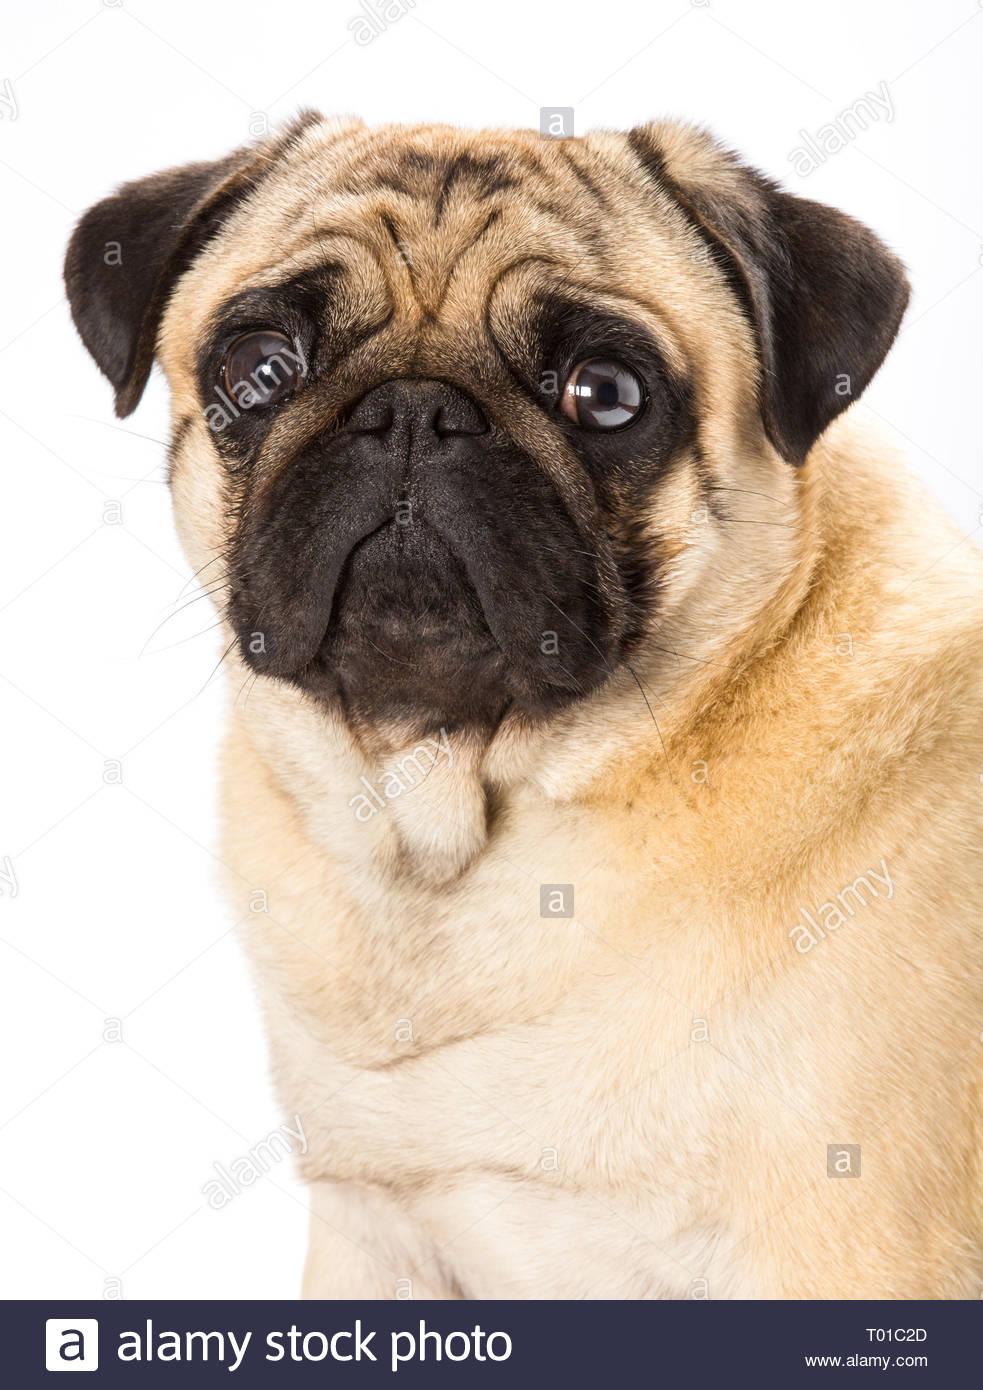 Pug dog breed, fawn colour. This dog breed originated in China around 2500 years ago. - Stock Image